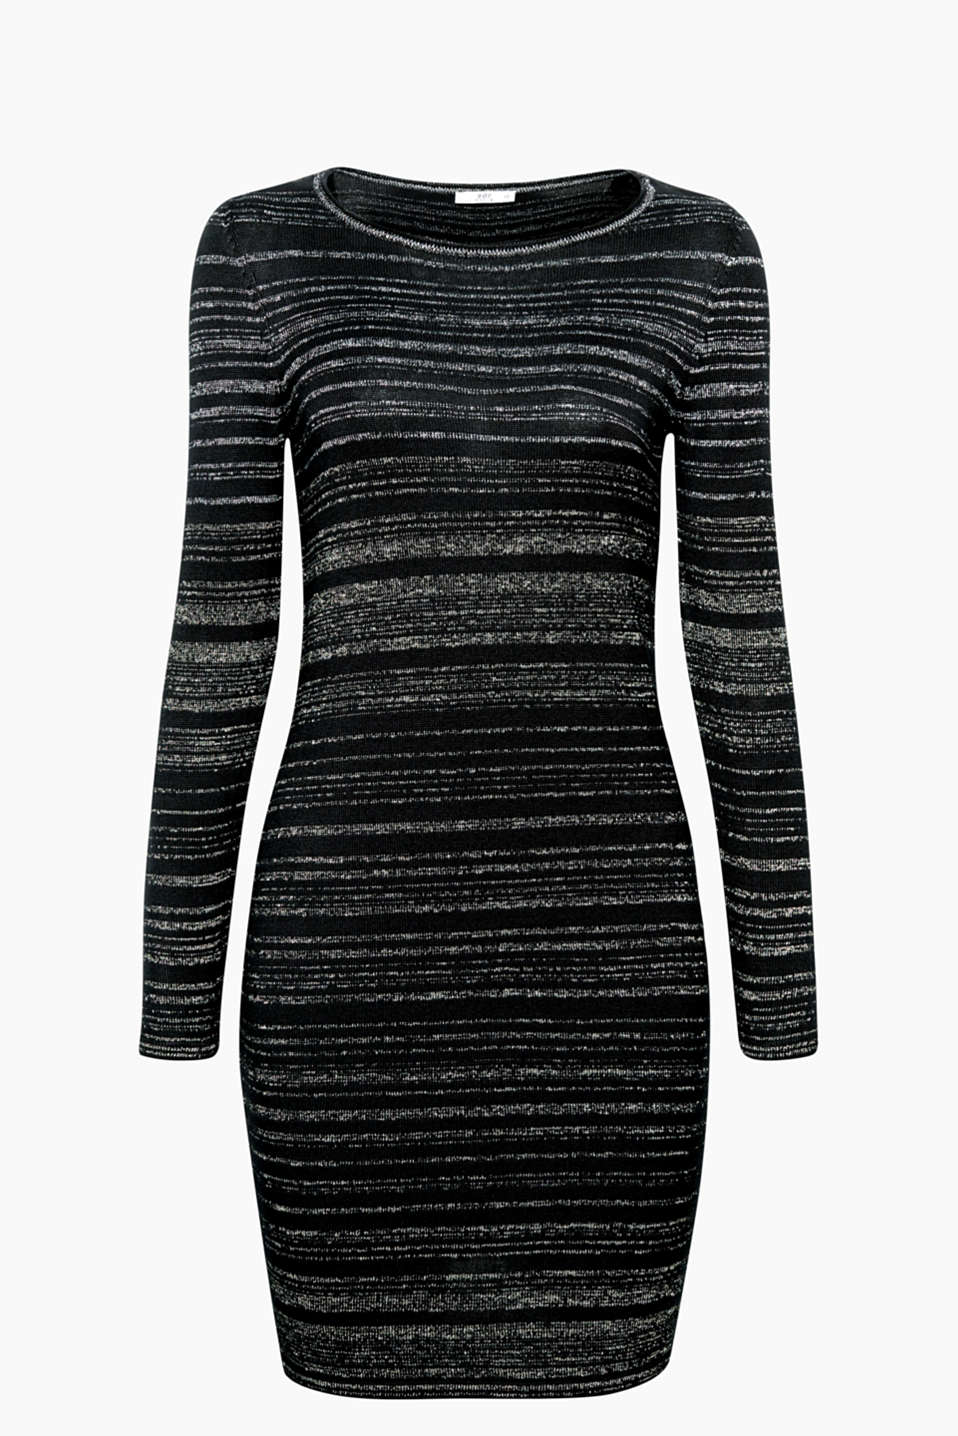 The shimmering lurex stripes give this figure-hugging knitted dress a festive and glamorous update.